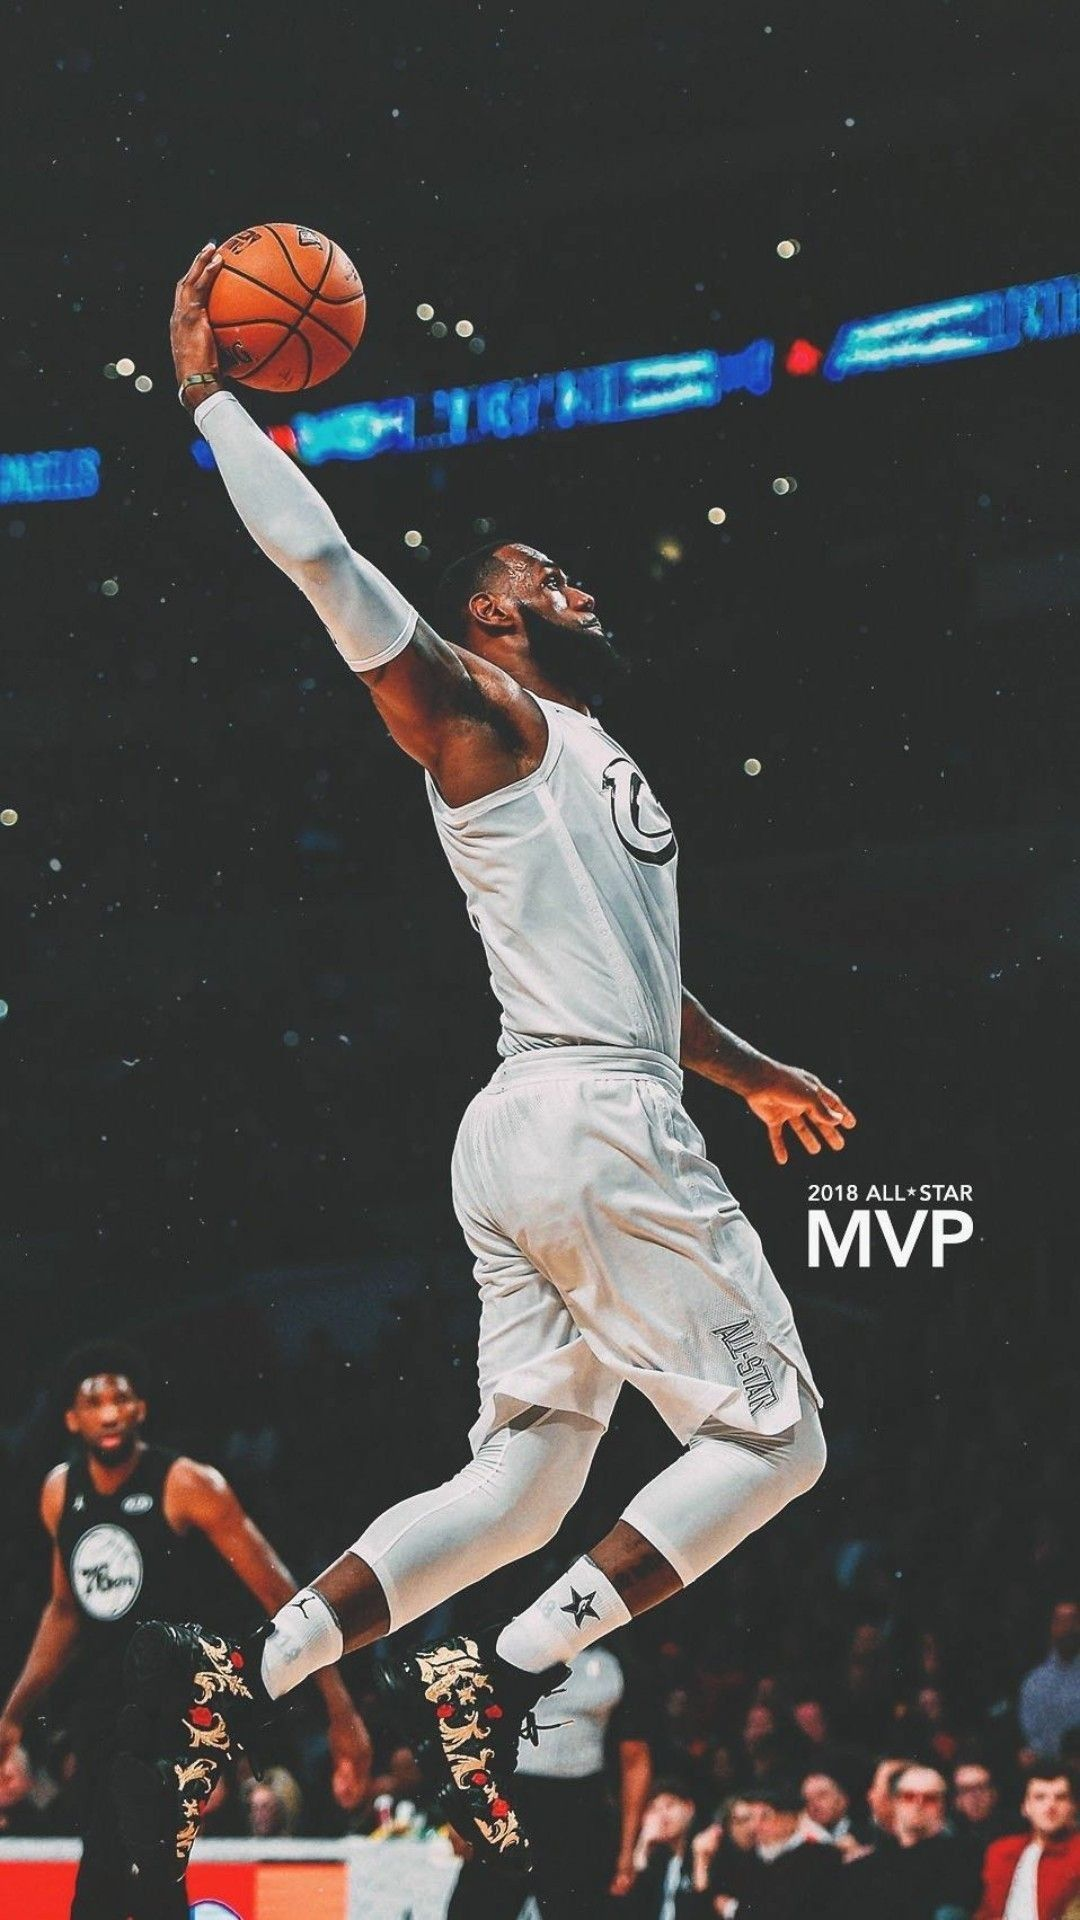 Lakers Lebron James Hd Wallpaper Android In 2020 Lebron James Wallpapers Nba Lebron James Lebron James Lakers